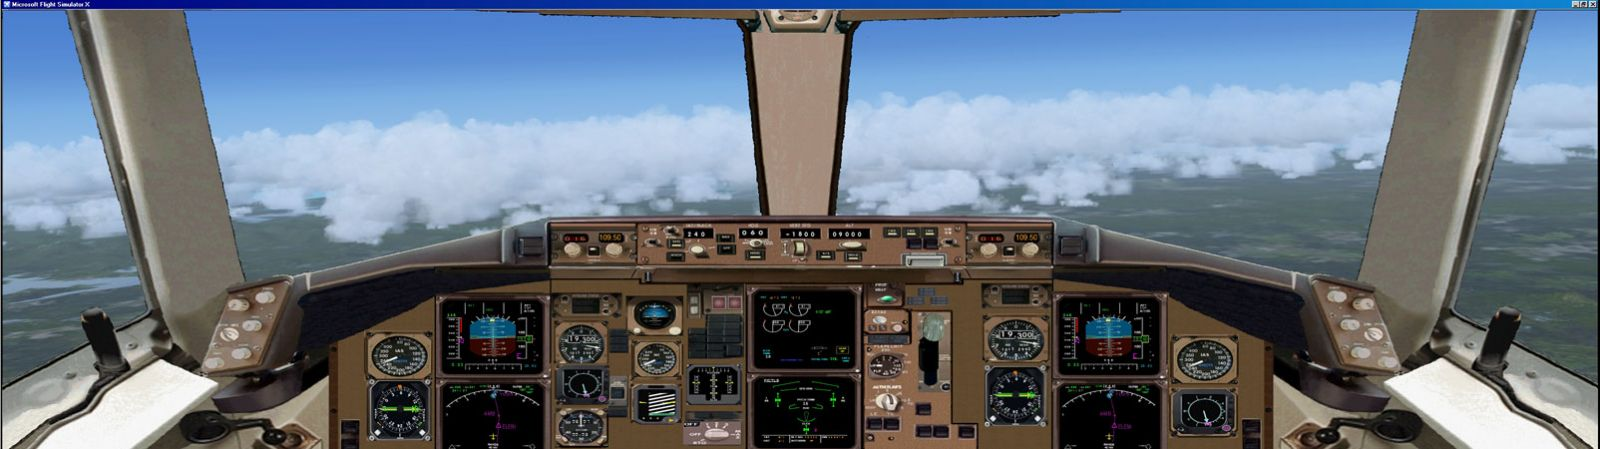 Airplane Full Hd Wallpaper Boeing 767 300 Panel For Dual Monitors For Fsx